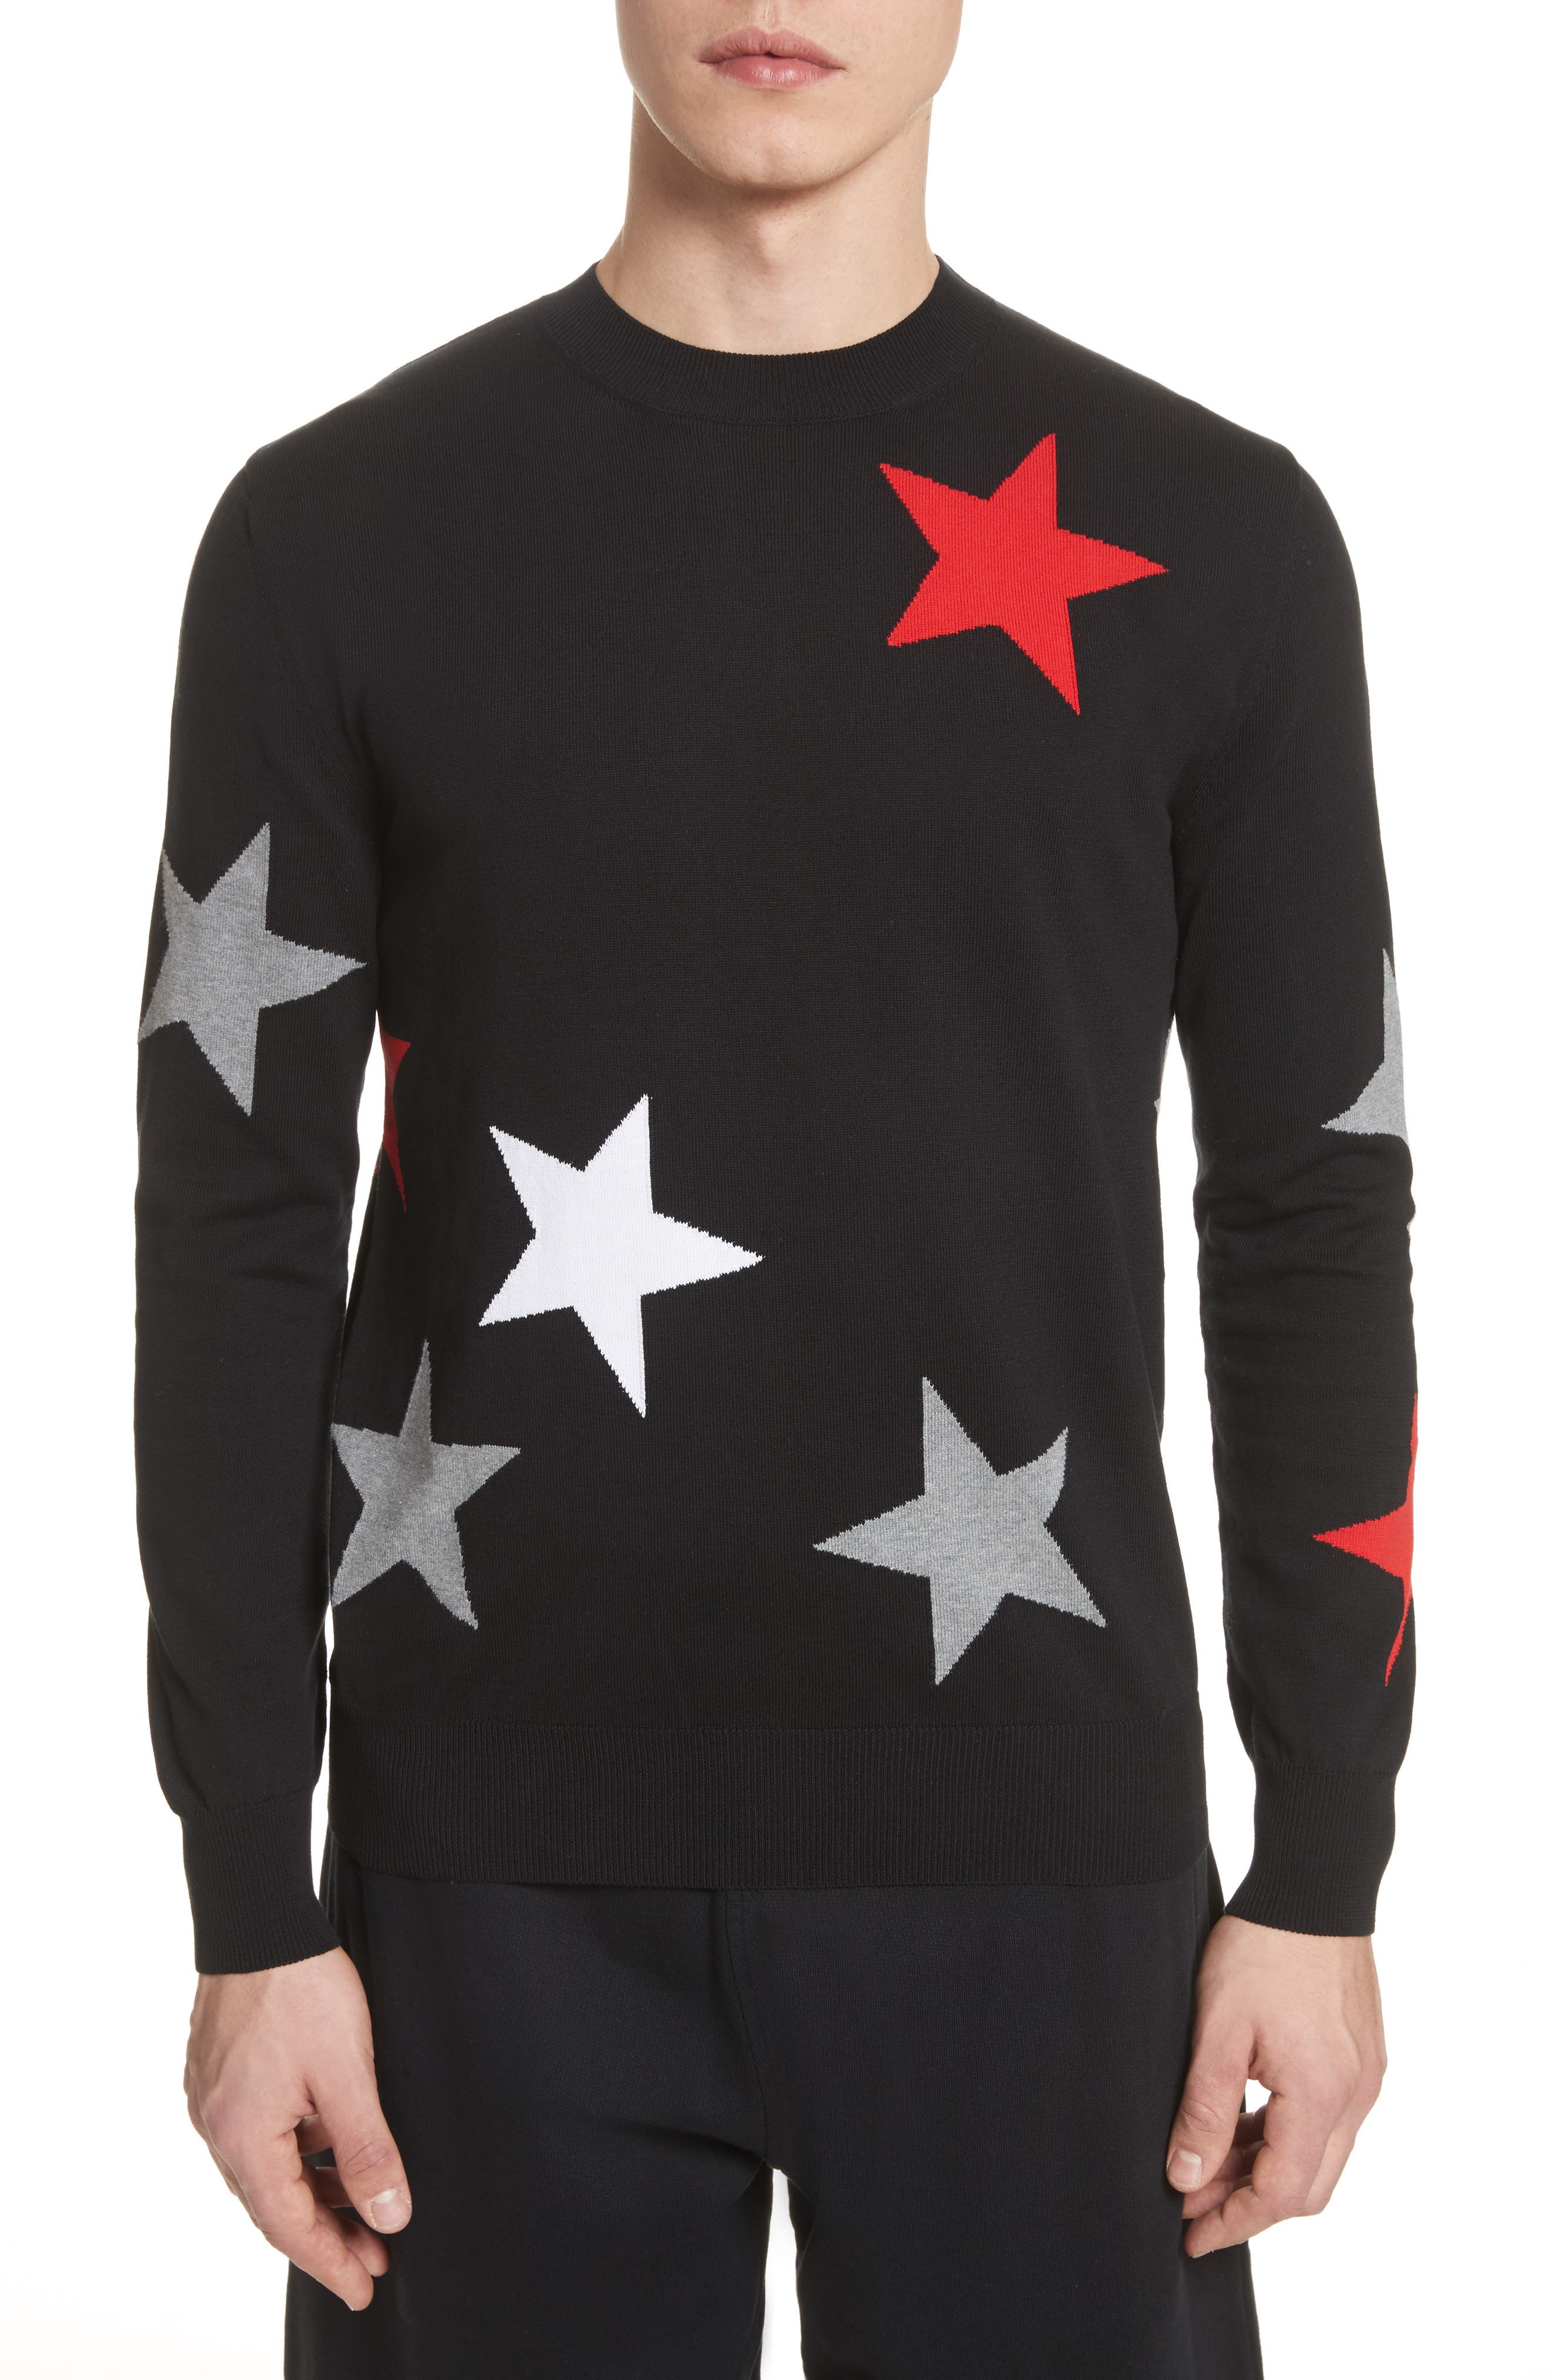 Alternate Image 1 Selected - Givenchy Star Crewneck Sweater